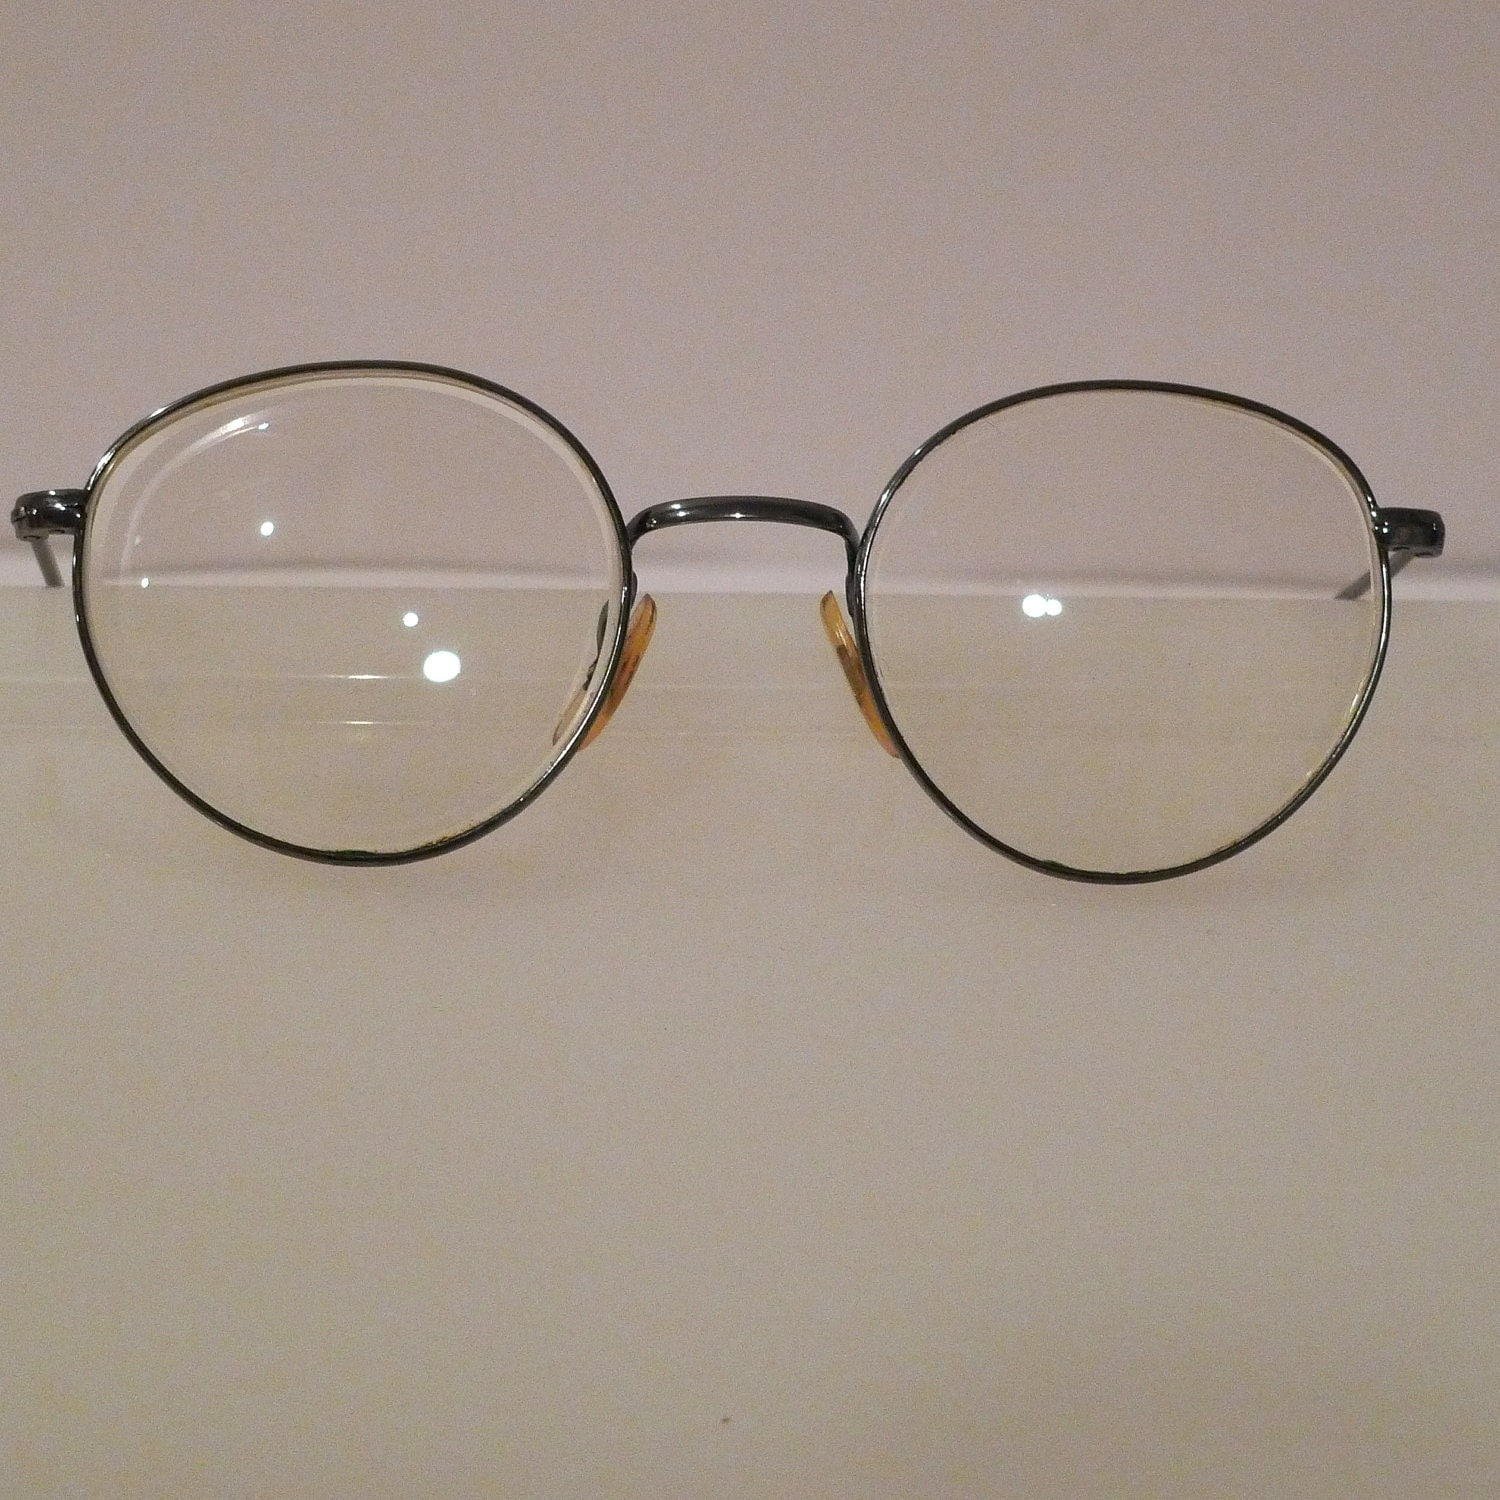 Wire Frame Glasses Vintage : Eye Glasses Frames Silver wire frame spectacles retro vintage